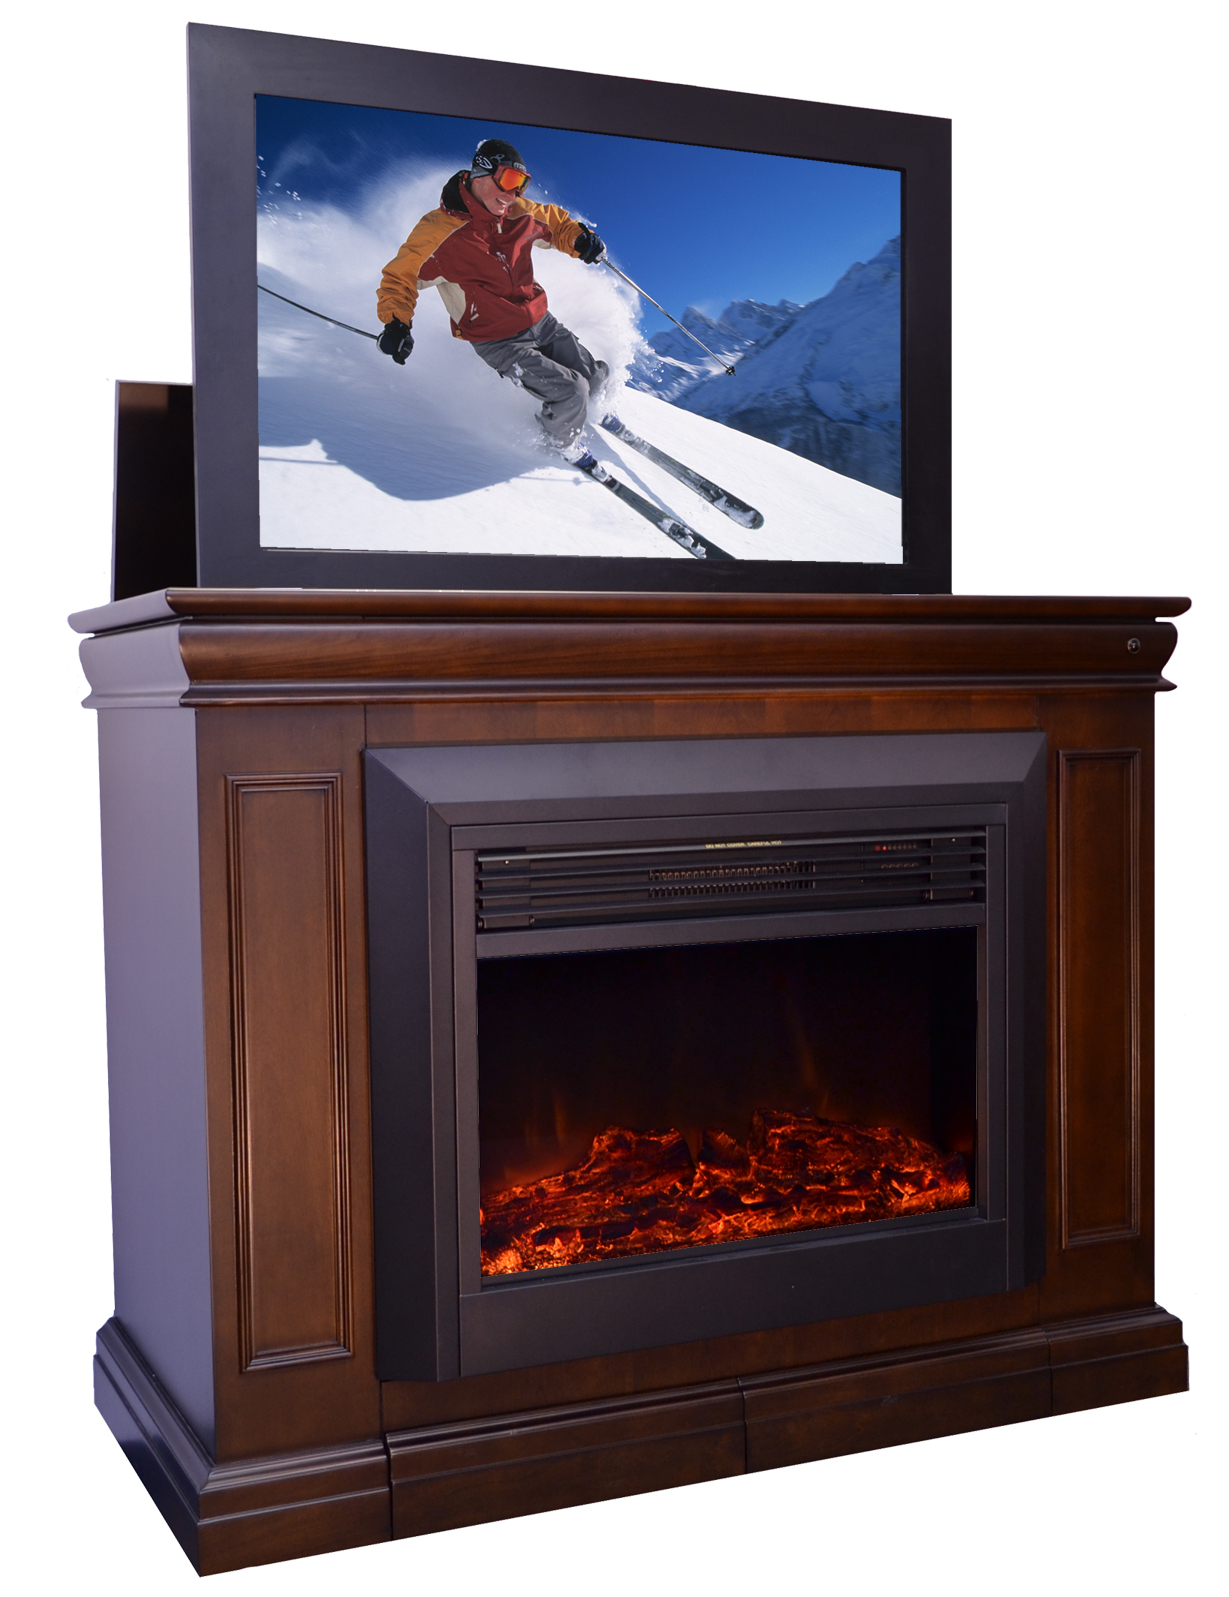 The Conestoga Tv Lift Cabinet With Electric Fireplace For Flat Screen Tvs Up To 46